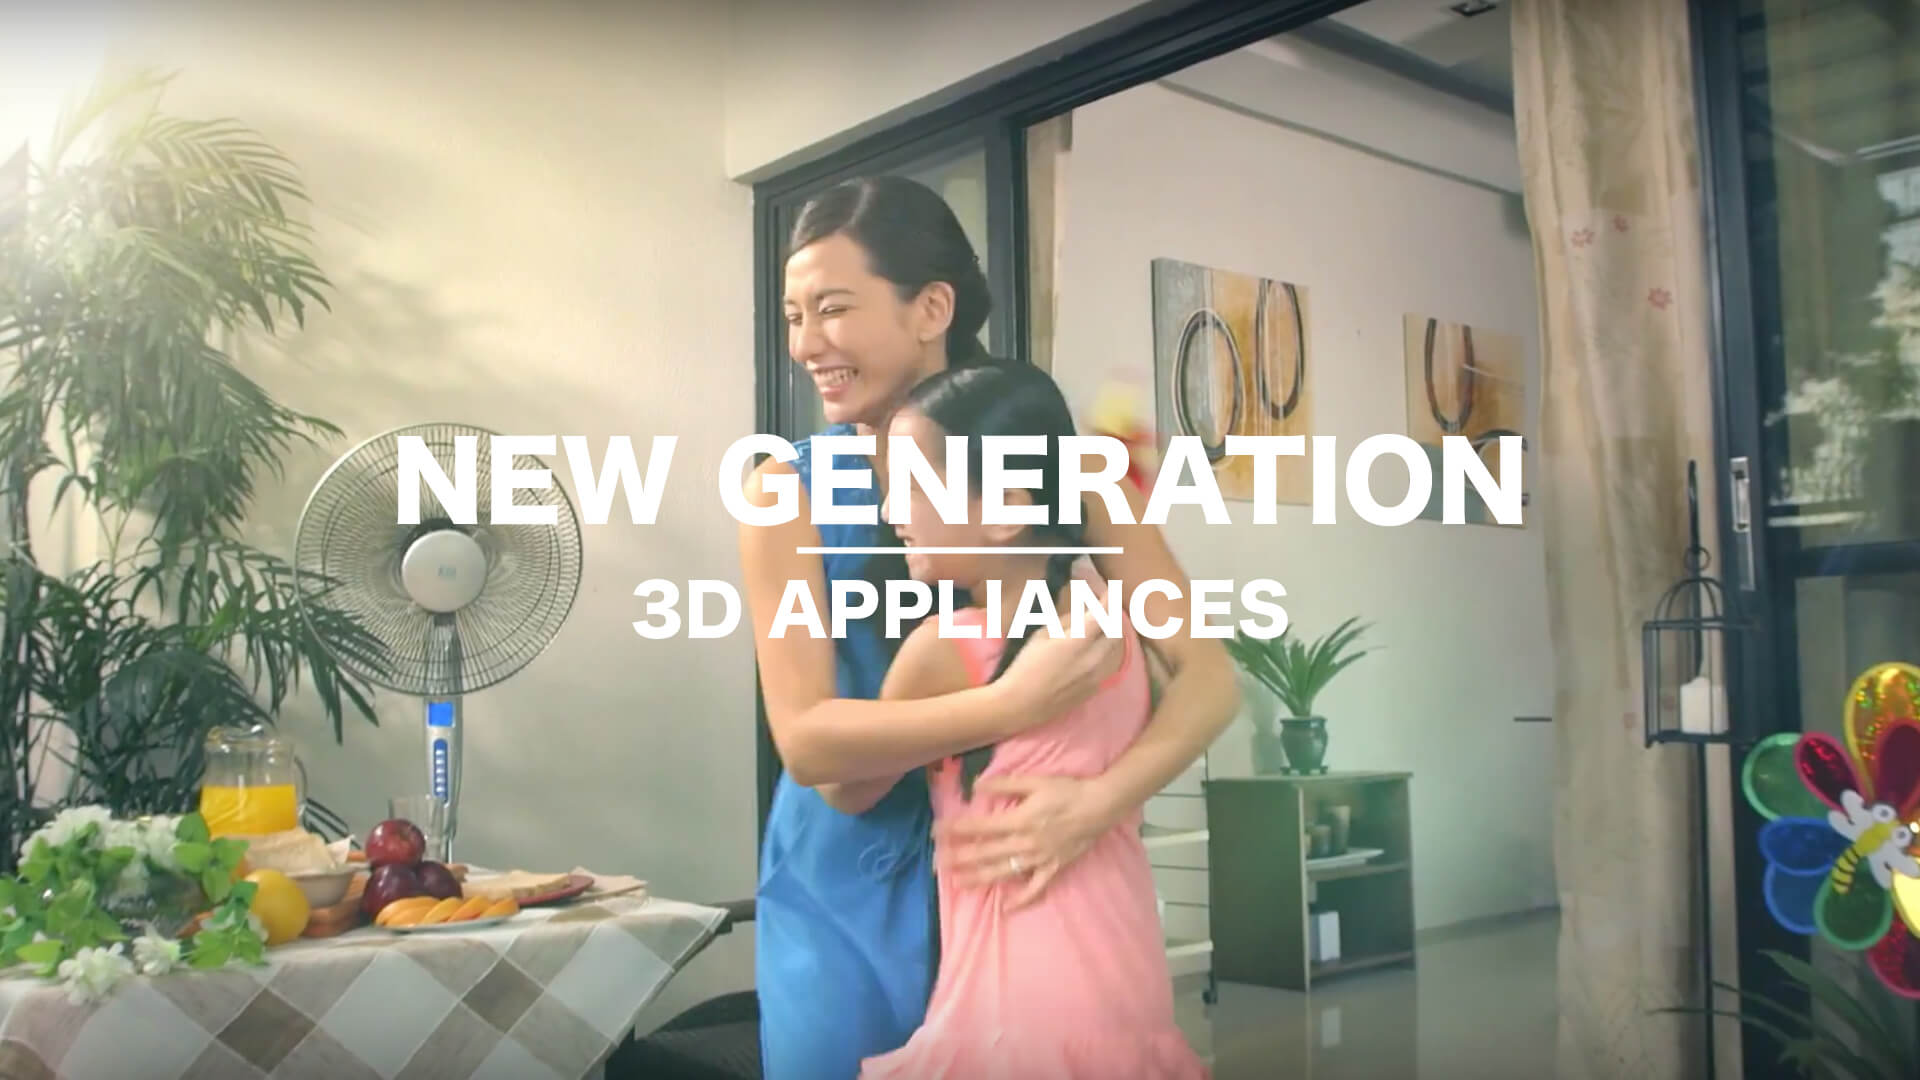 Project 3D New Generation Appliances TVC